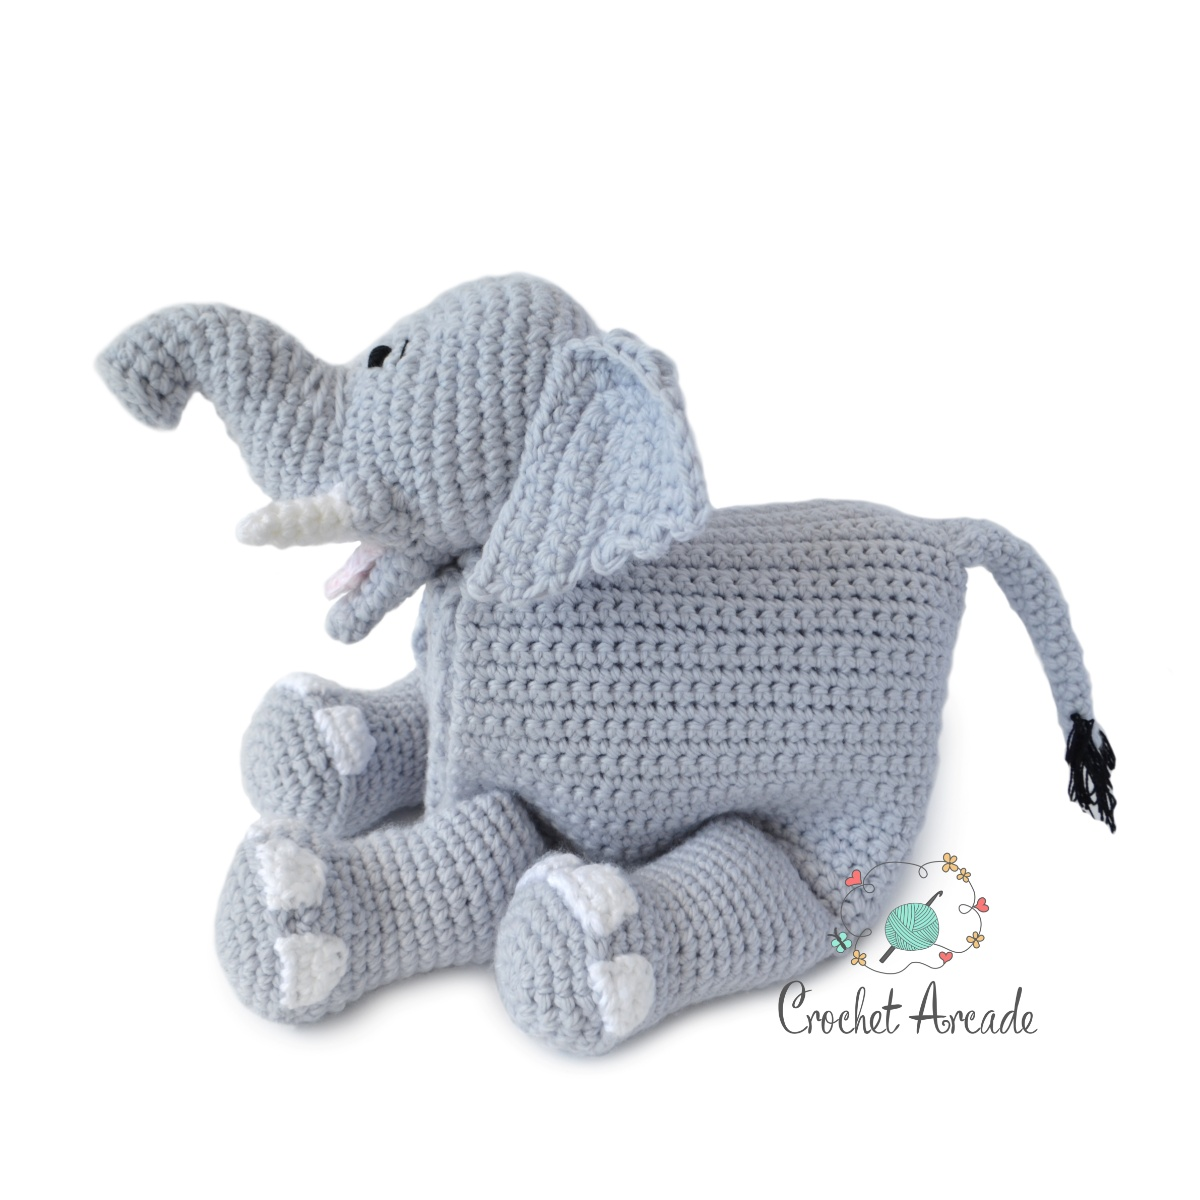 Cuddle And Play Elephant Baby Blanket Crochet Pattern Crochet Arcade